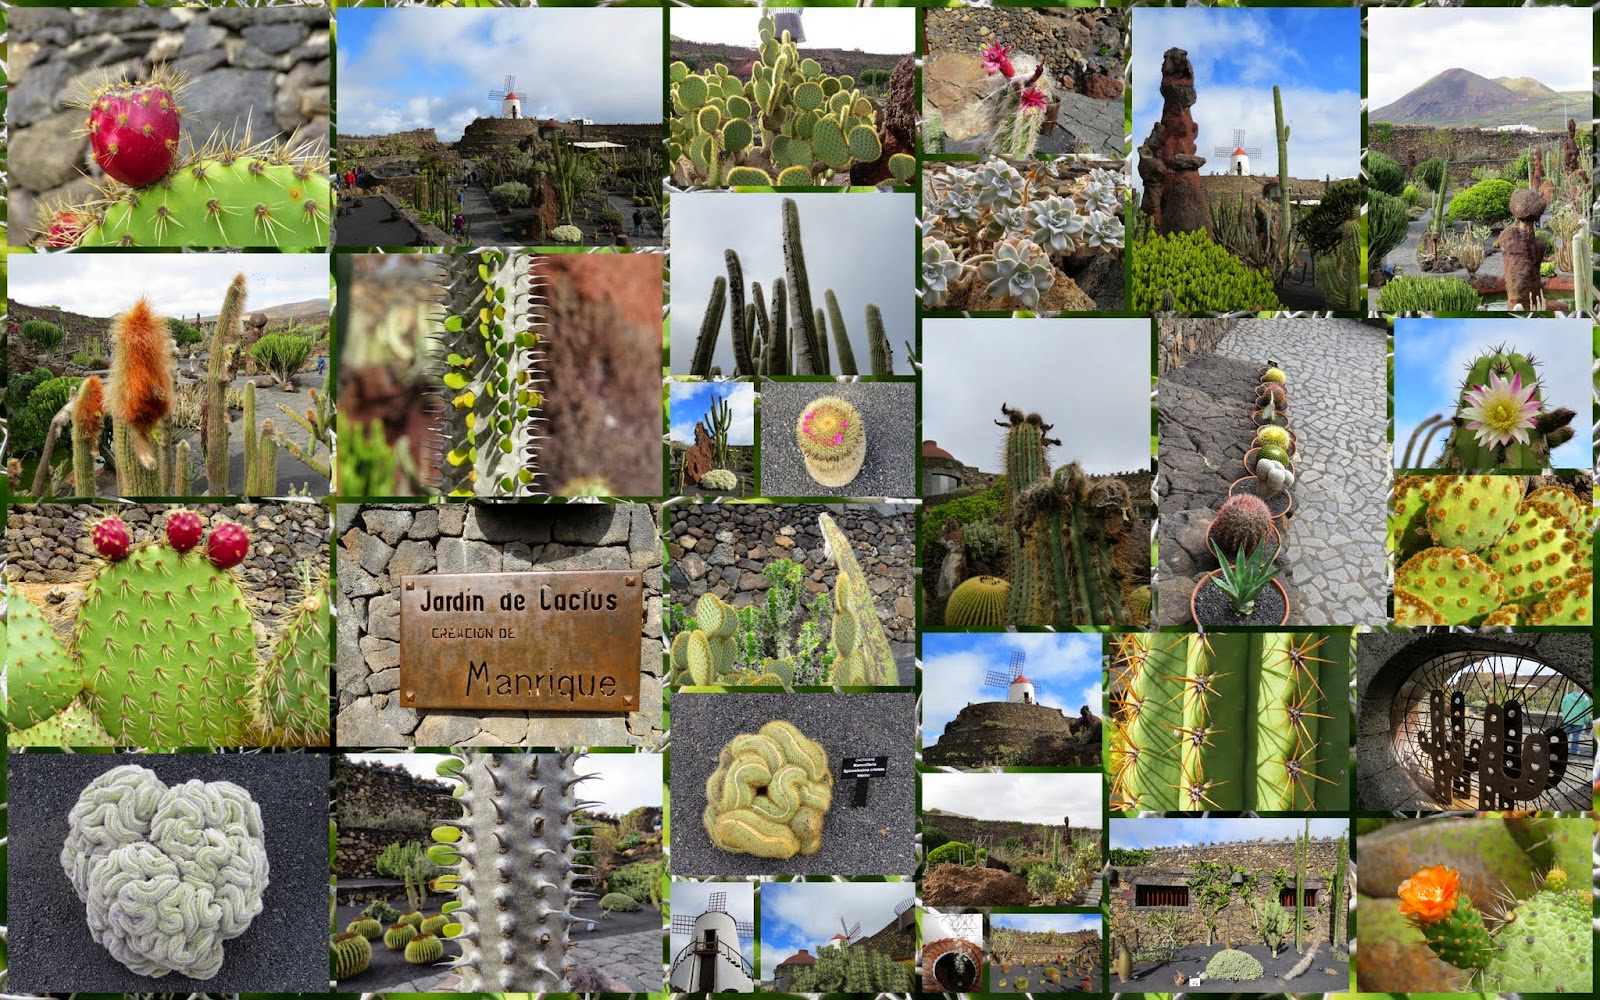 What to do in Lanzarote in January: Jardin de Cactus on Lanzarote